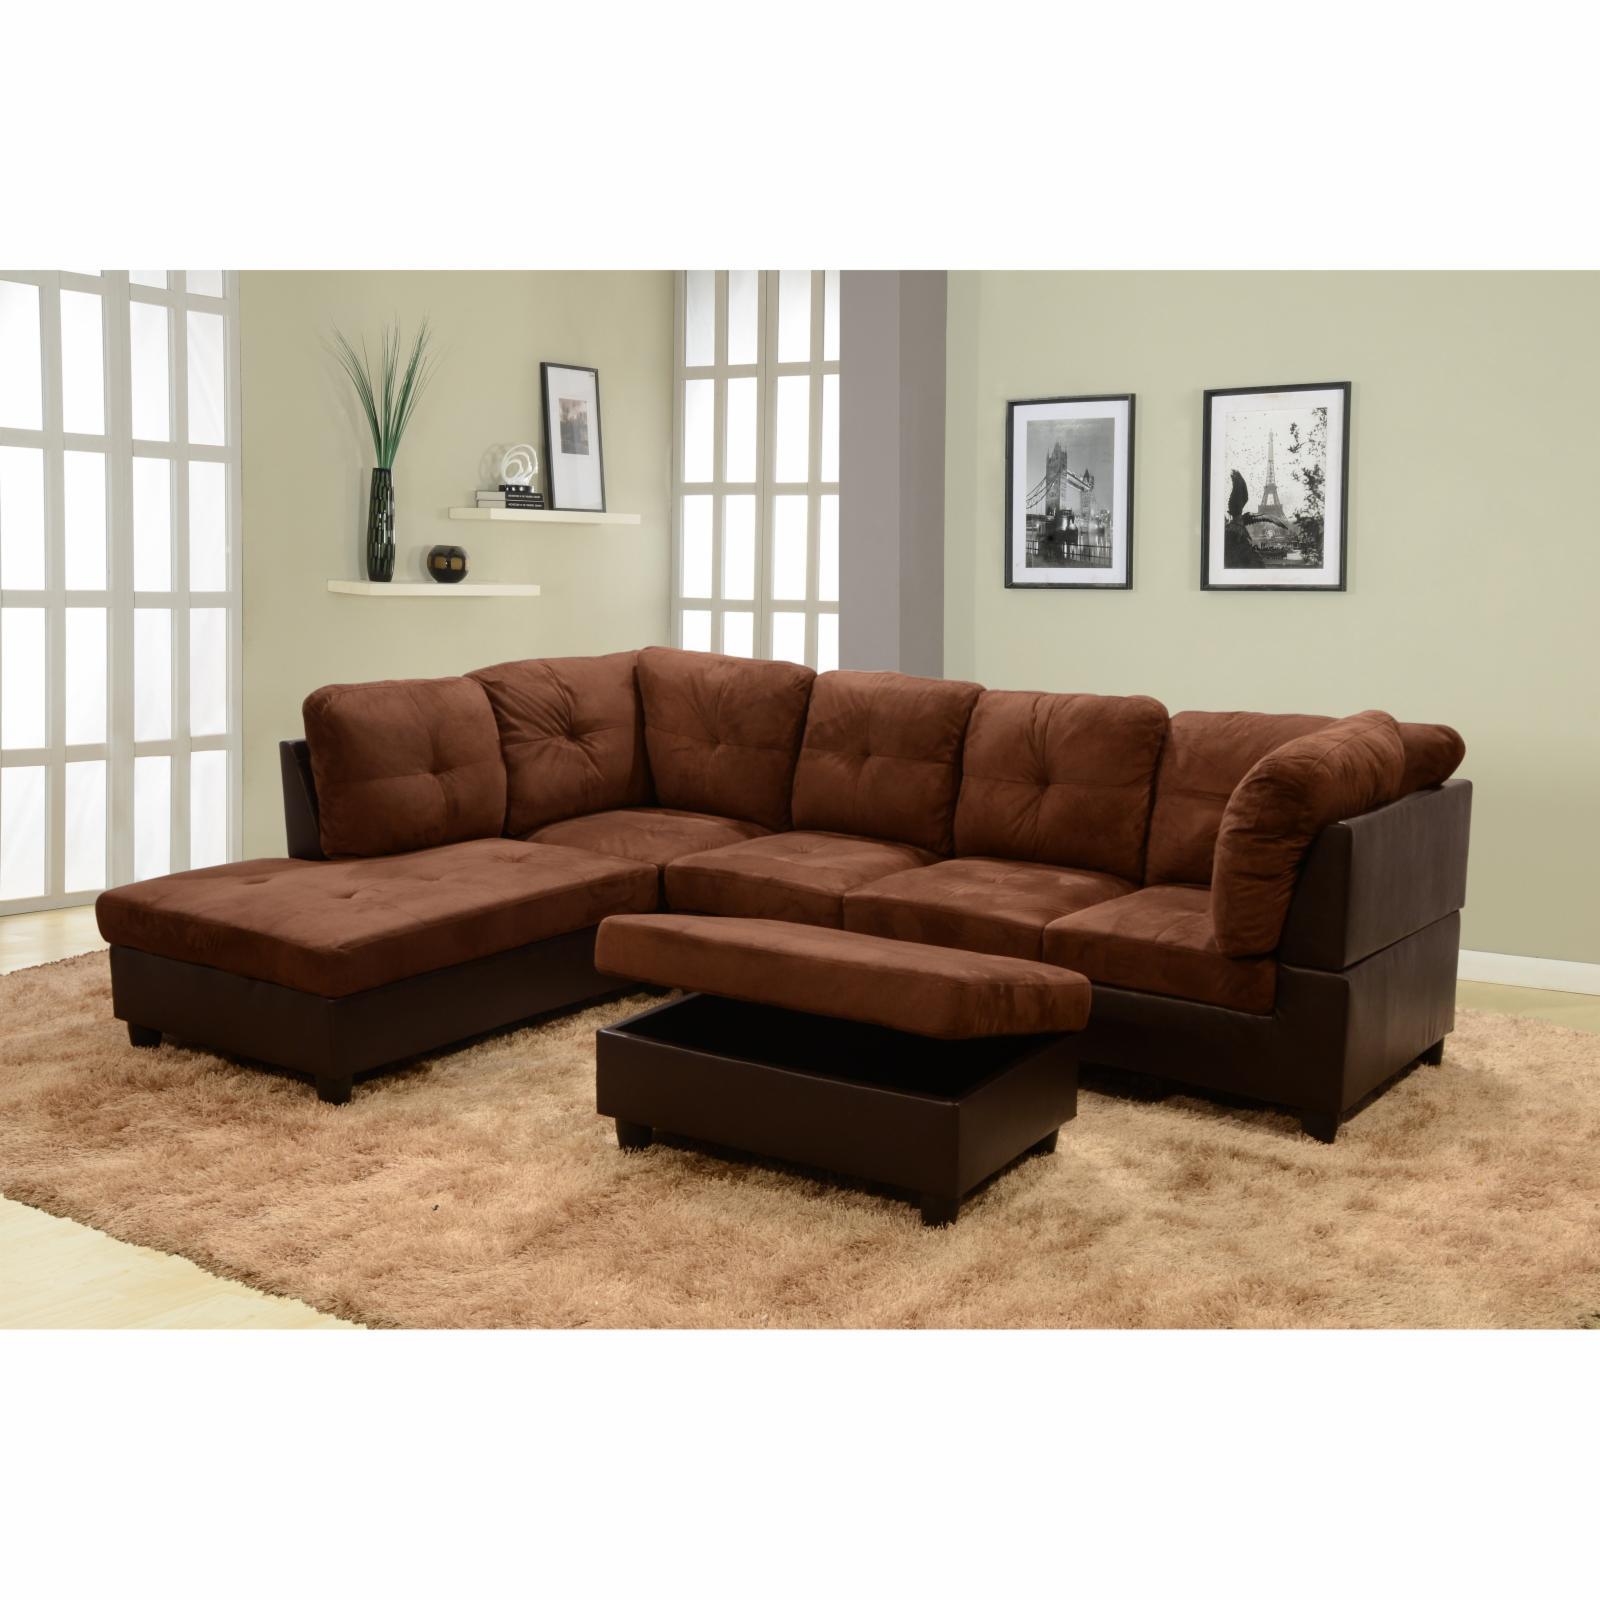 Beverly Fine Furniture 3 Piece Chocolate Microfiber Faux Leather